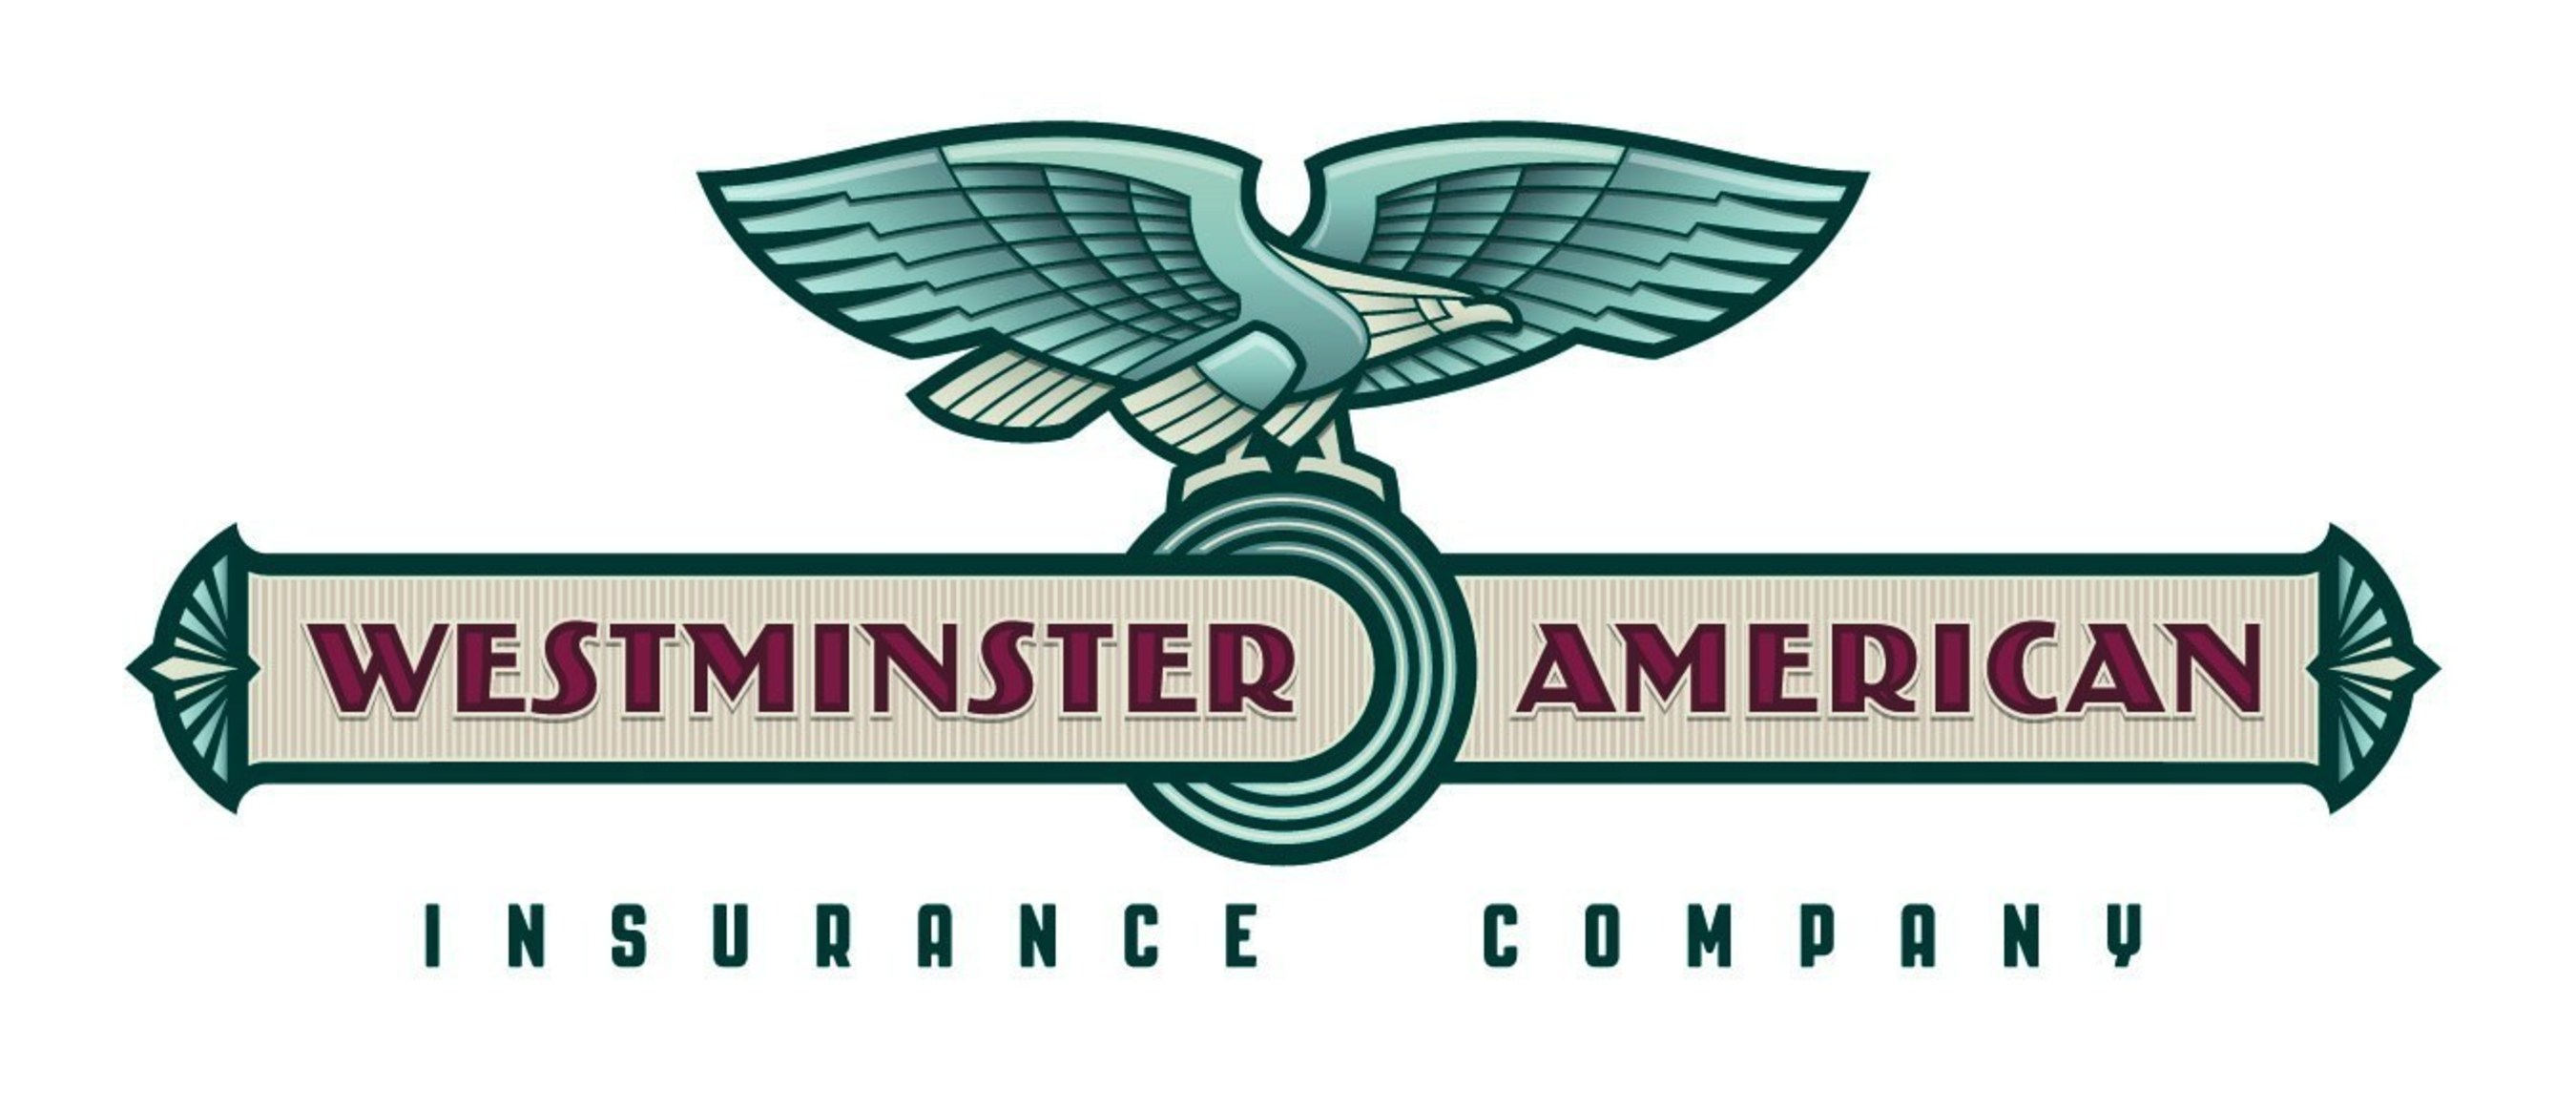 Westminster American Insurance Company Logo Case Study